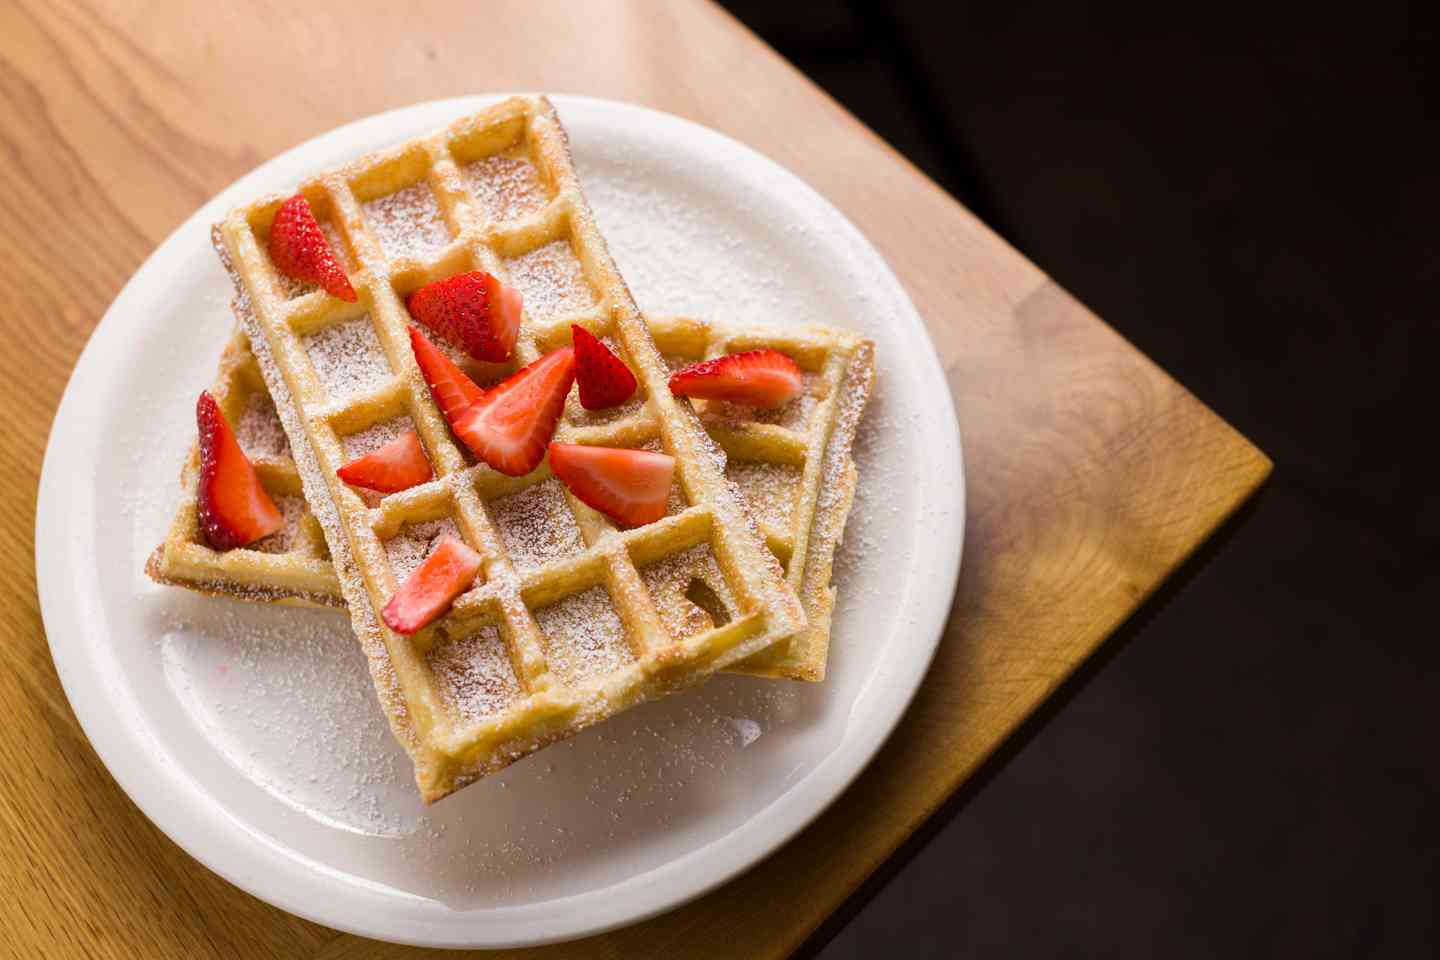 Waffles + Powdered Sugar + Strawberries